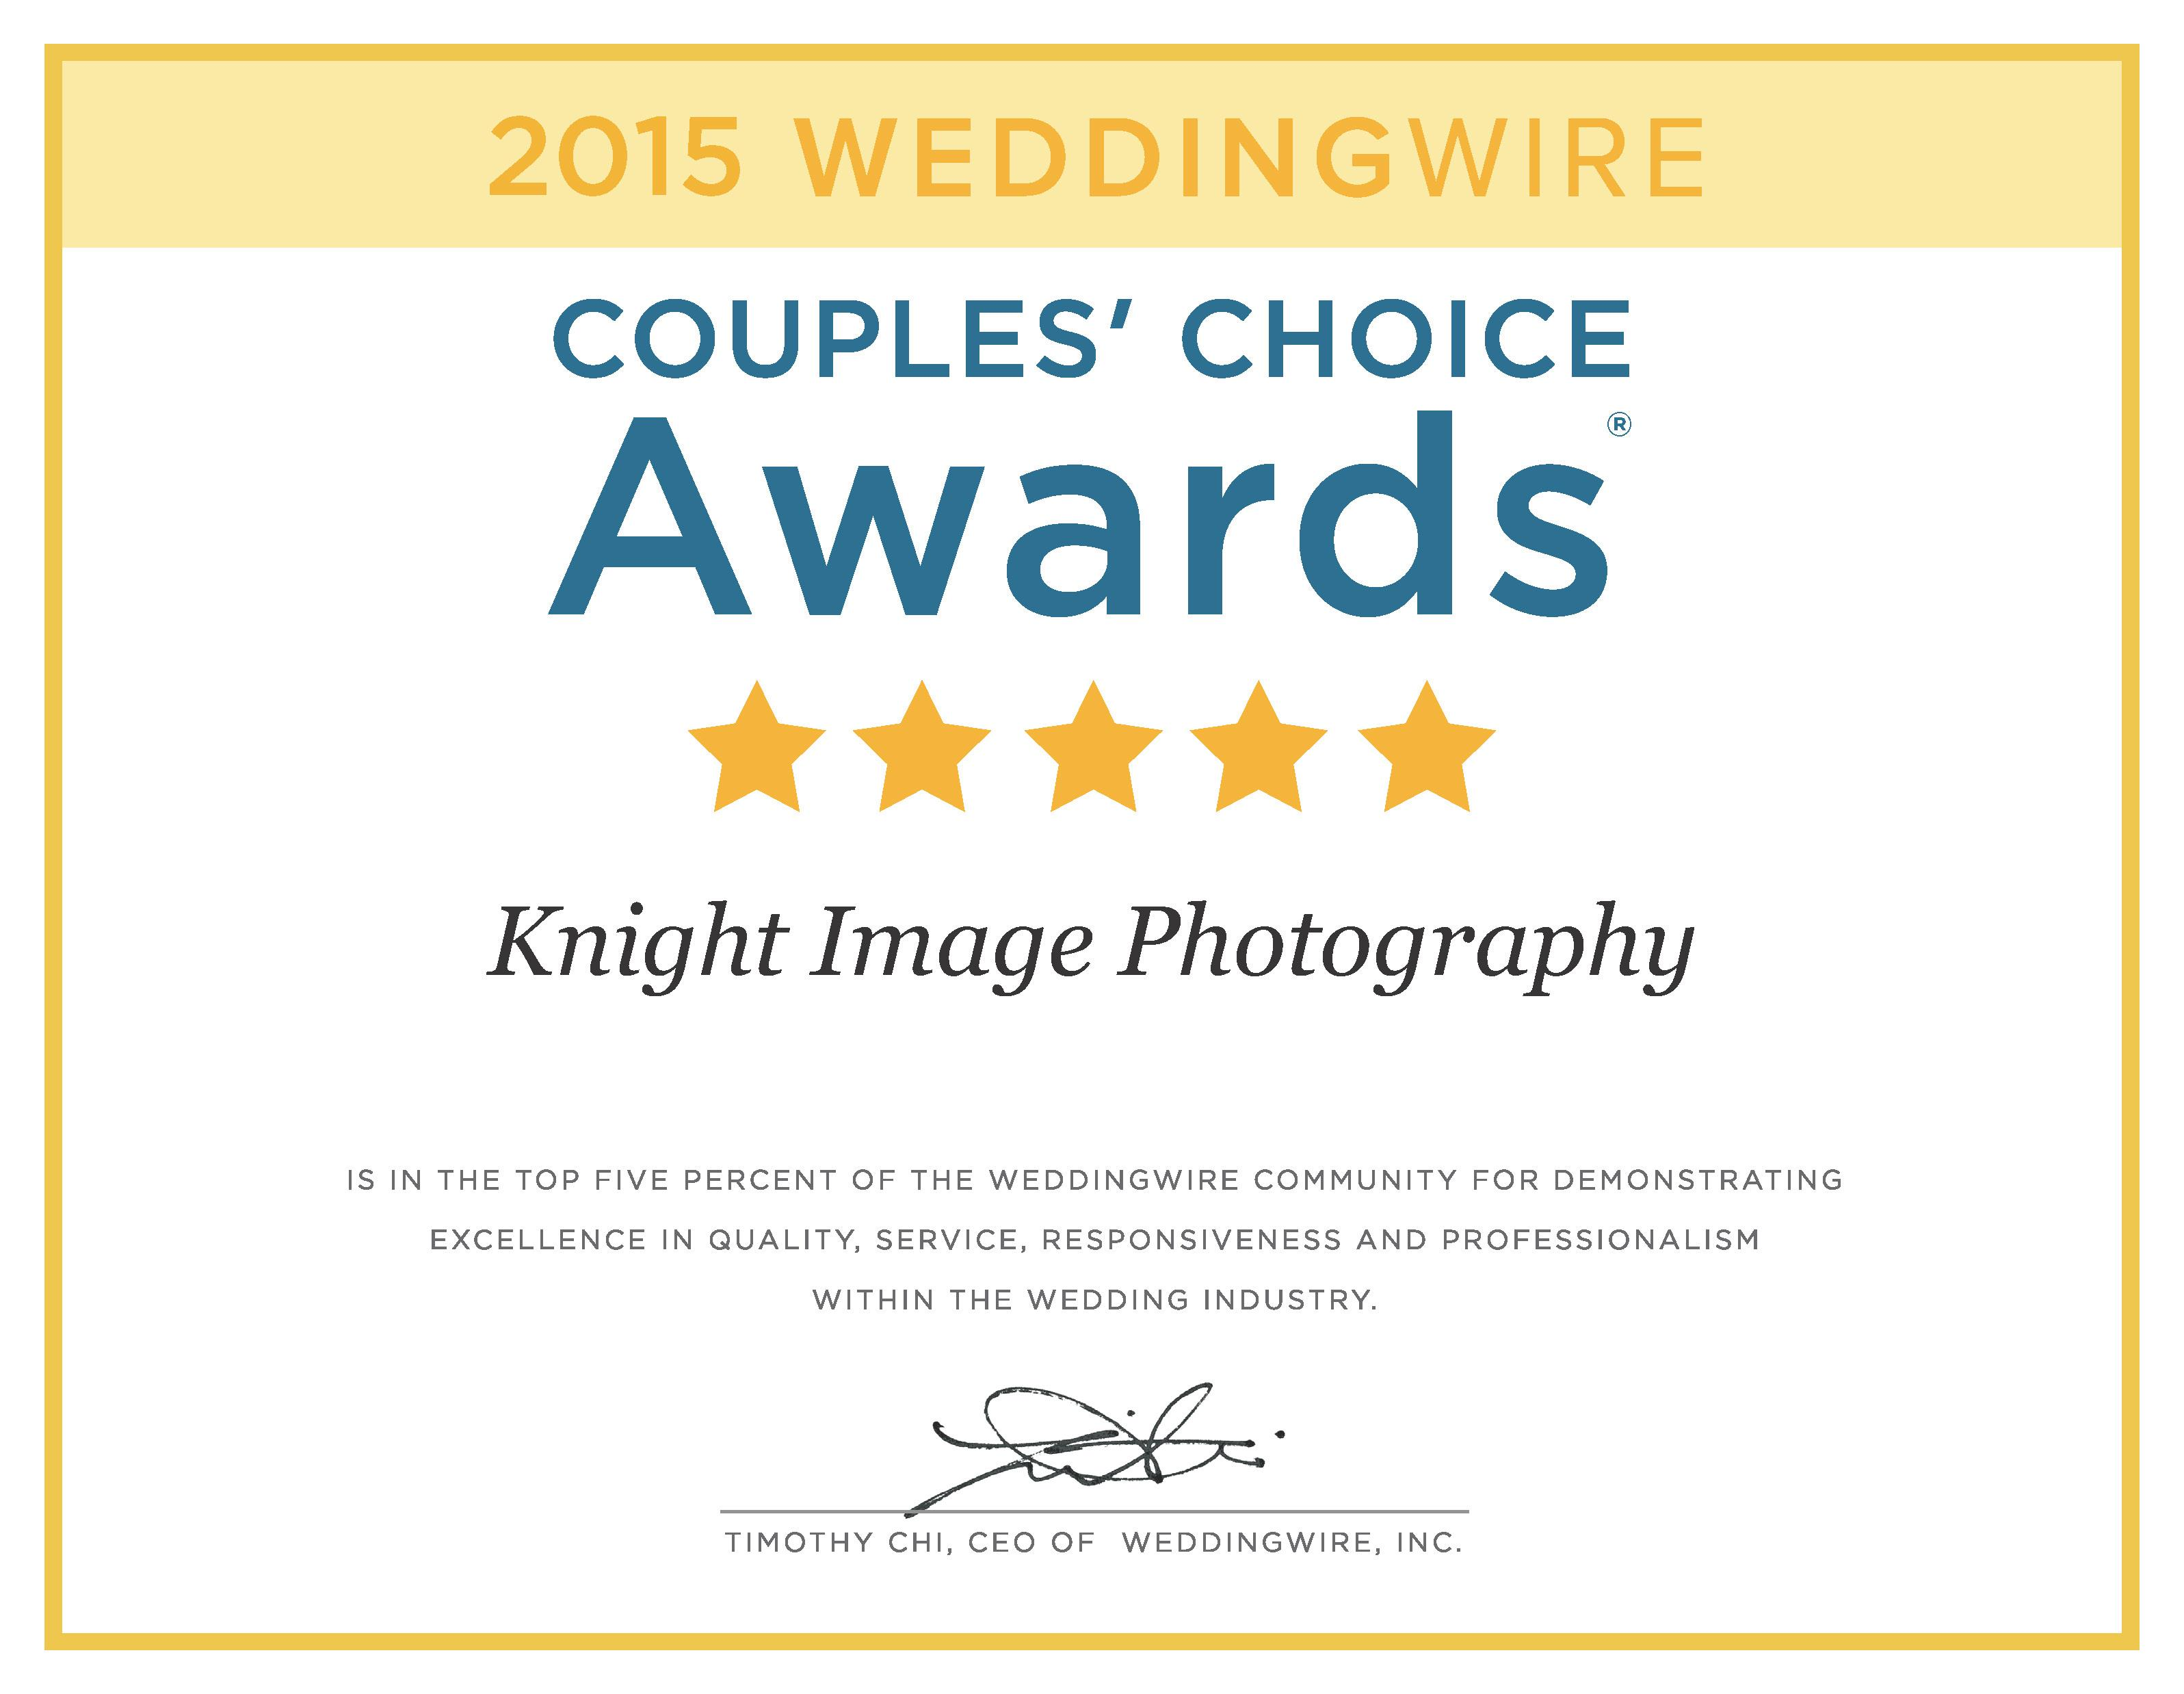 Knight Image Photography Receives 2015 Couples' Choice Award